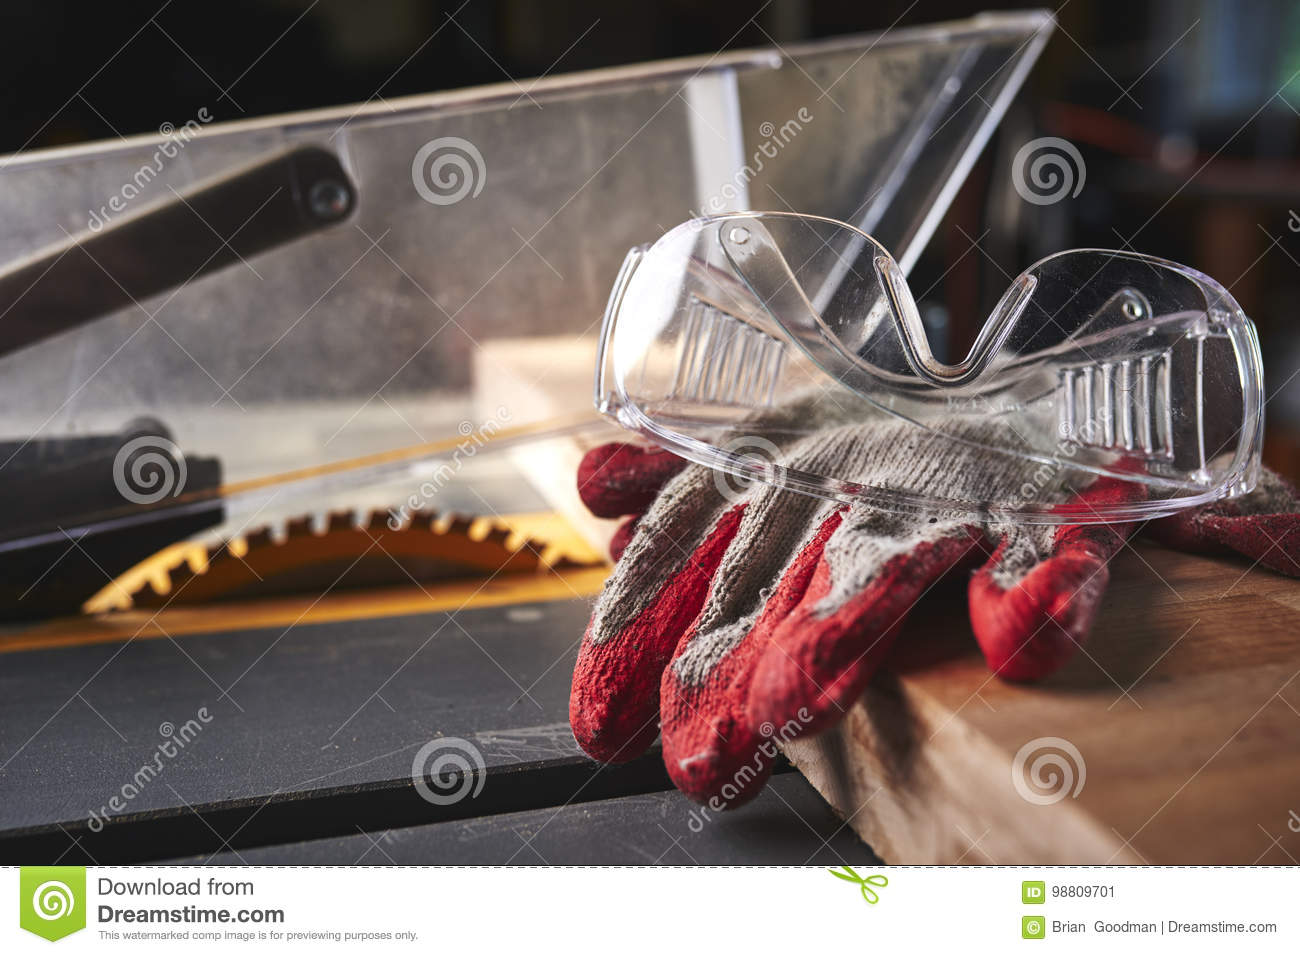 c5649f48fcc ... A carpenter s gloves and safety glasses on a table saw